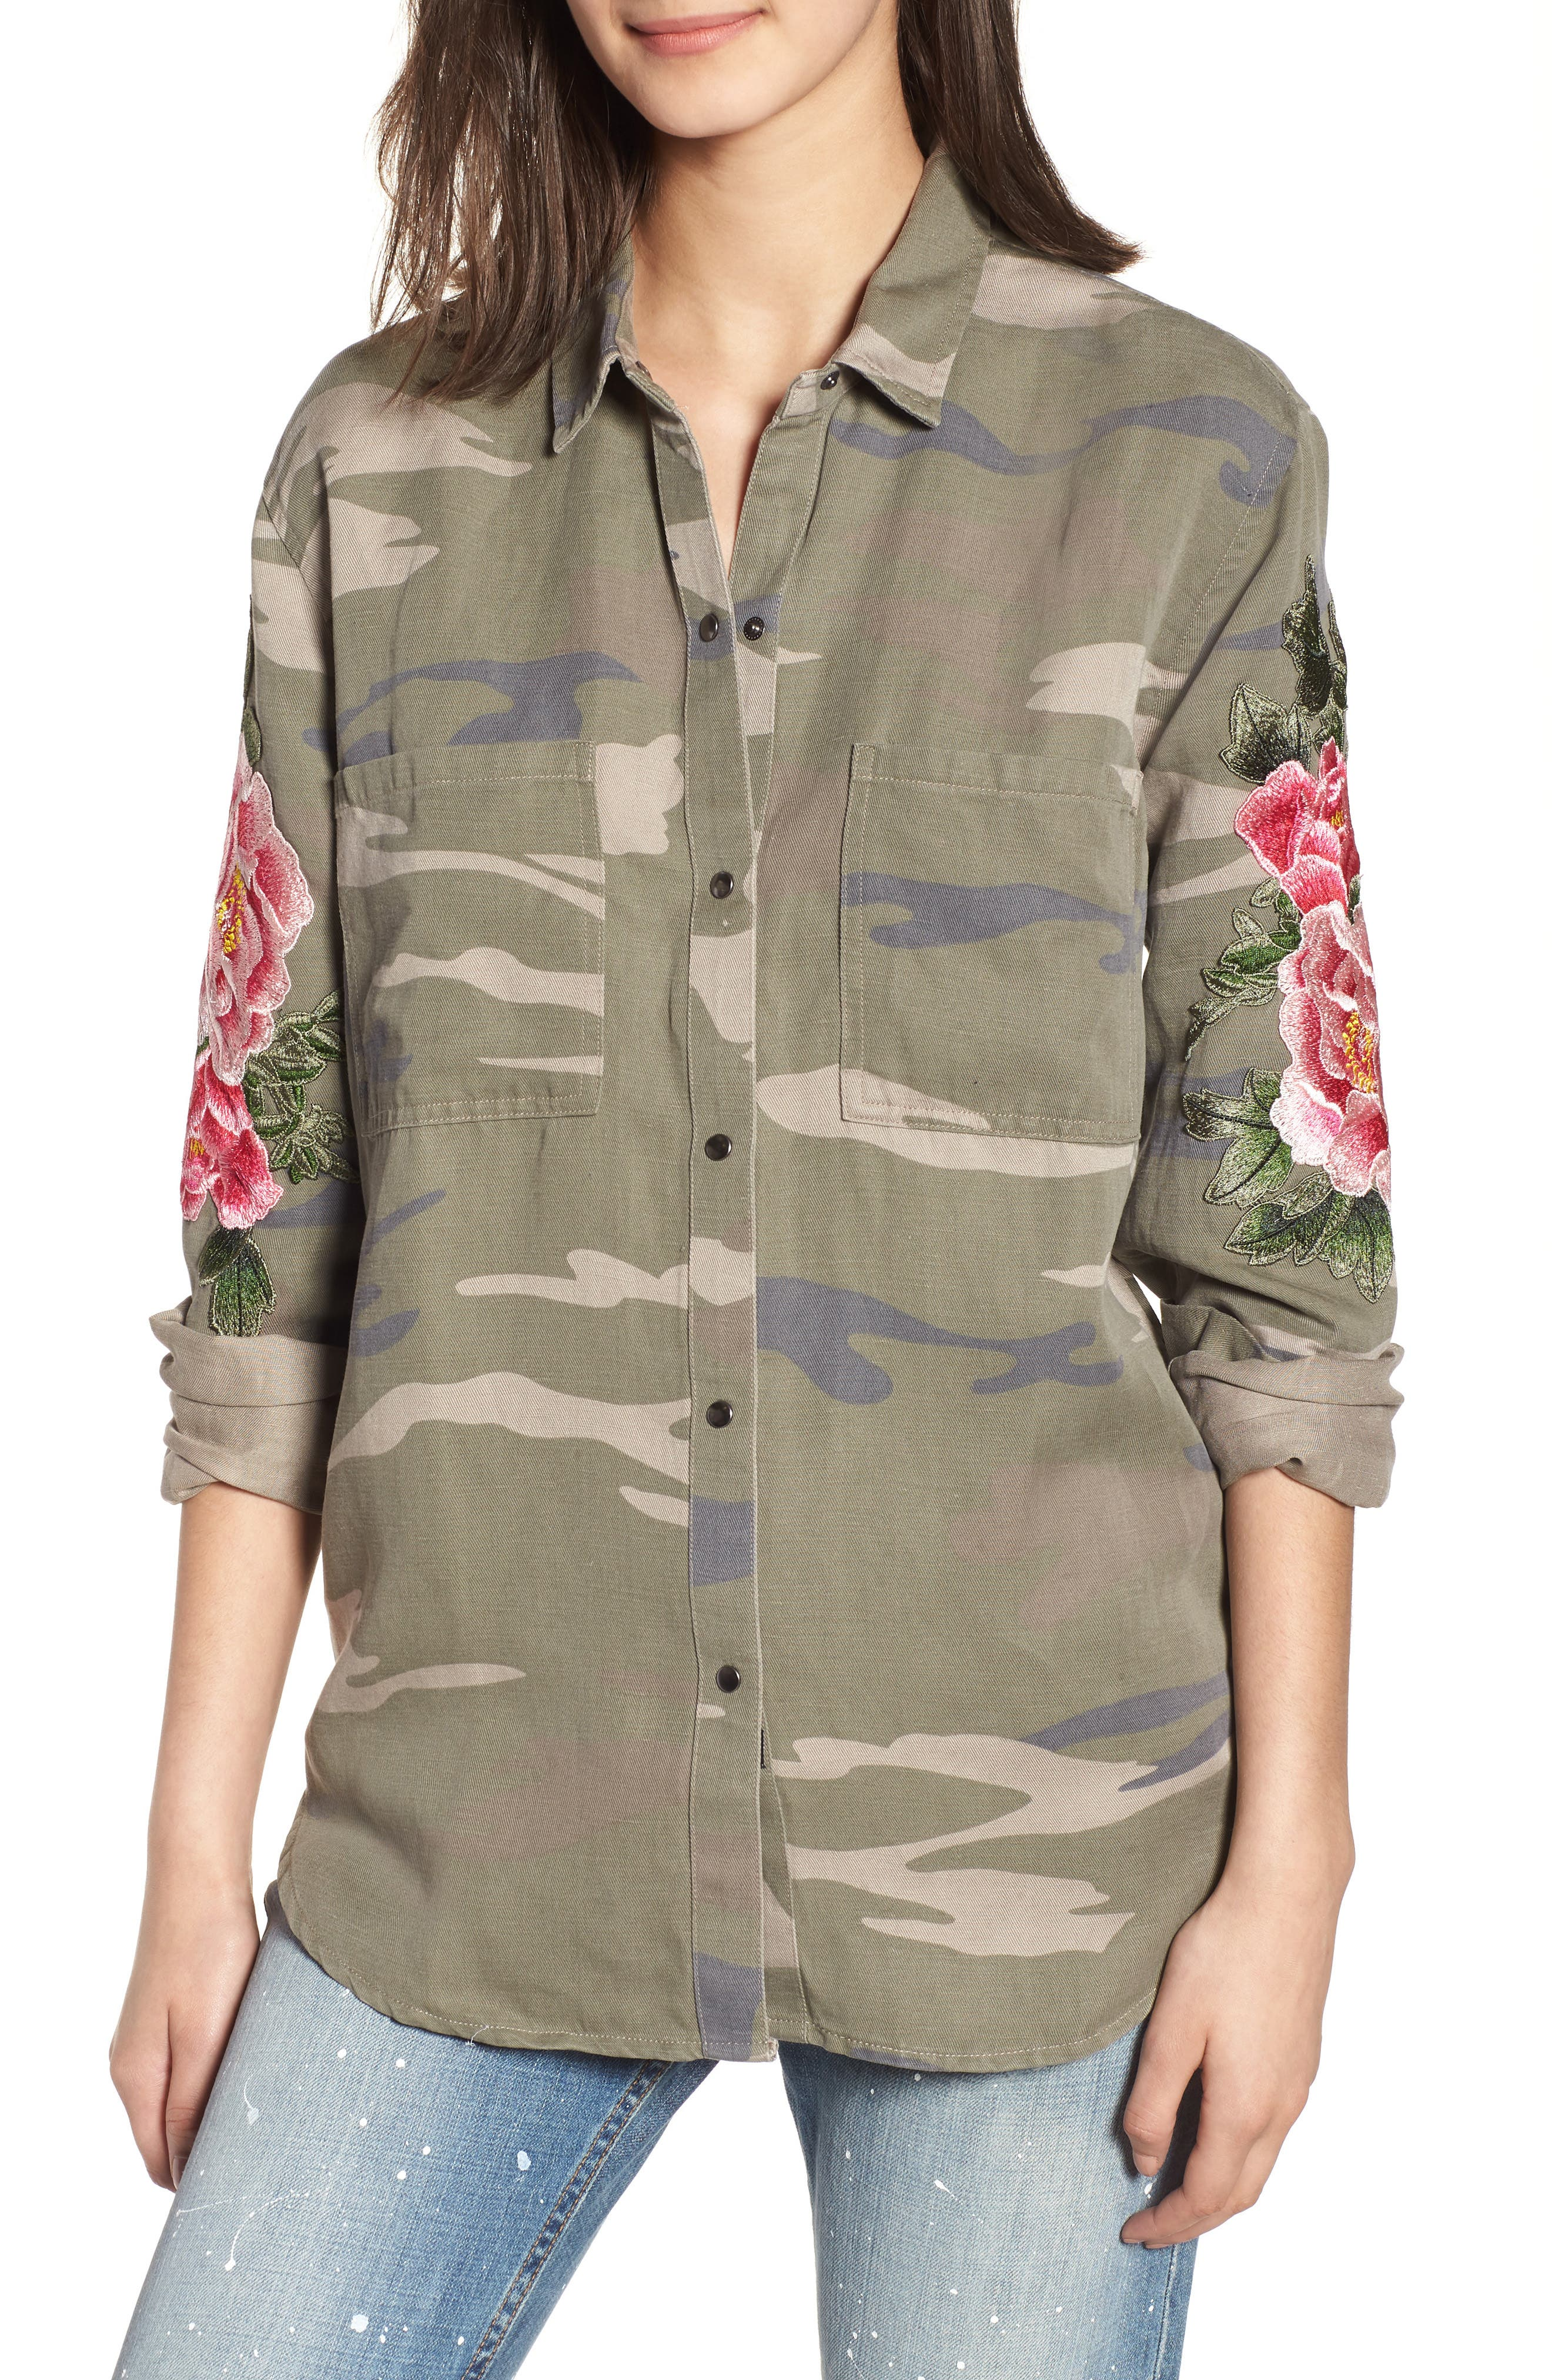 Marcel Embroidered Shirt,                         Main,                         color, Sage Camo With Floral